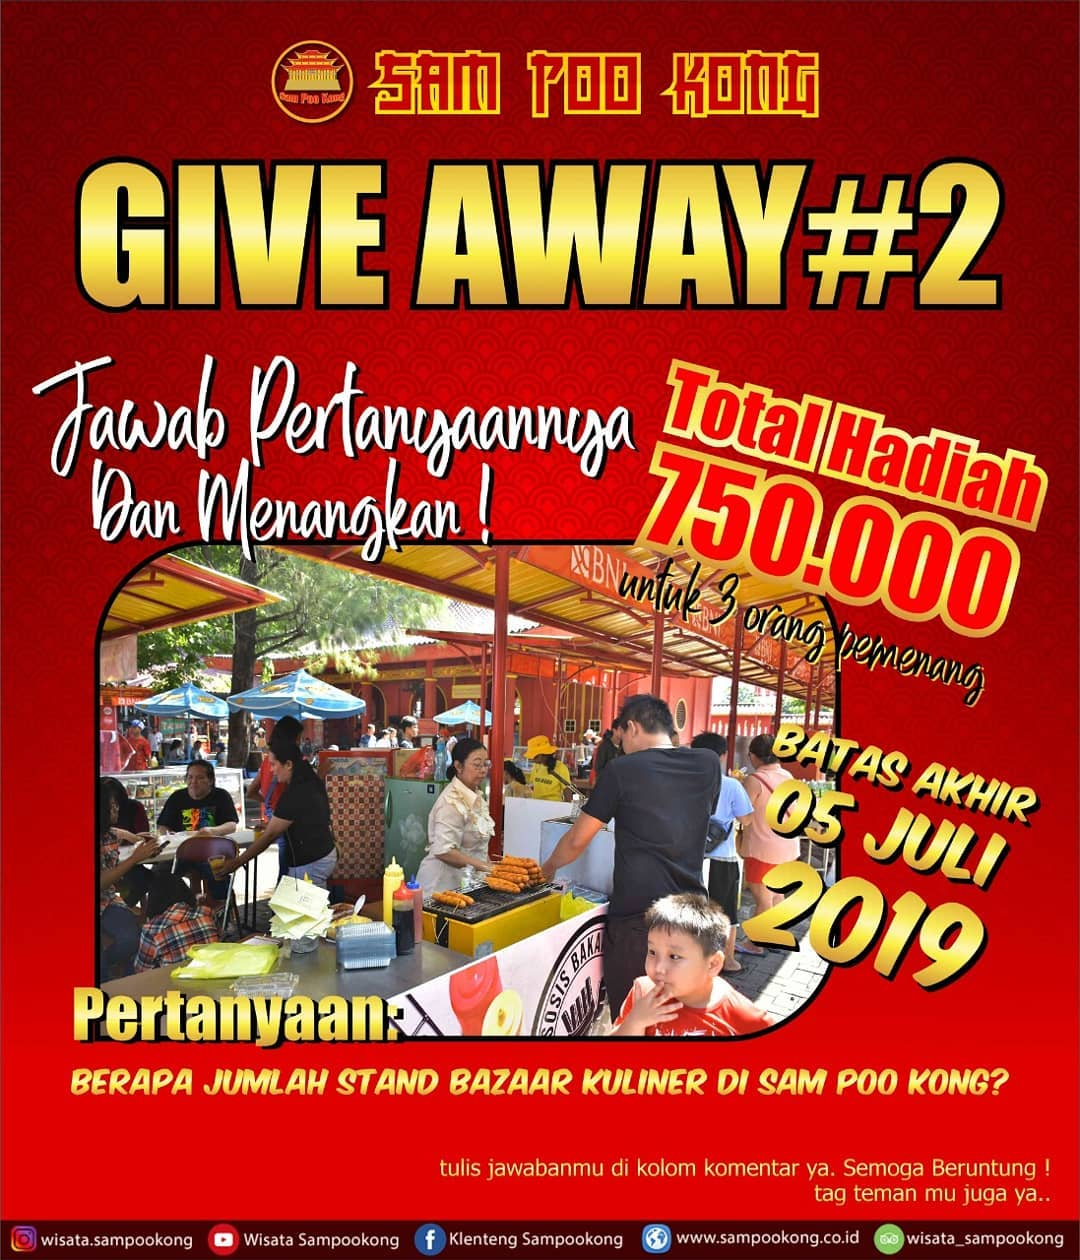 EVENTS SEMARANG : GIVE AWAY SAM POO KONG 2